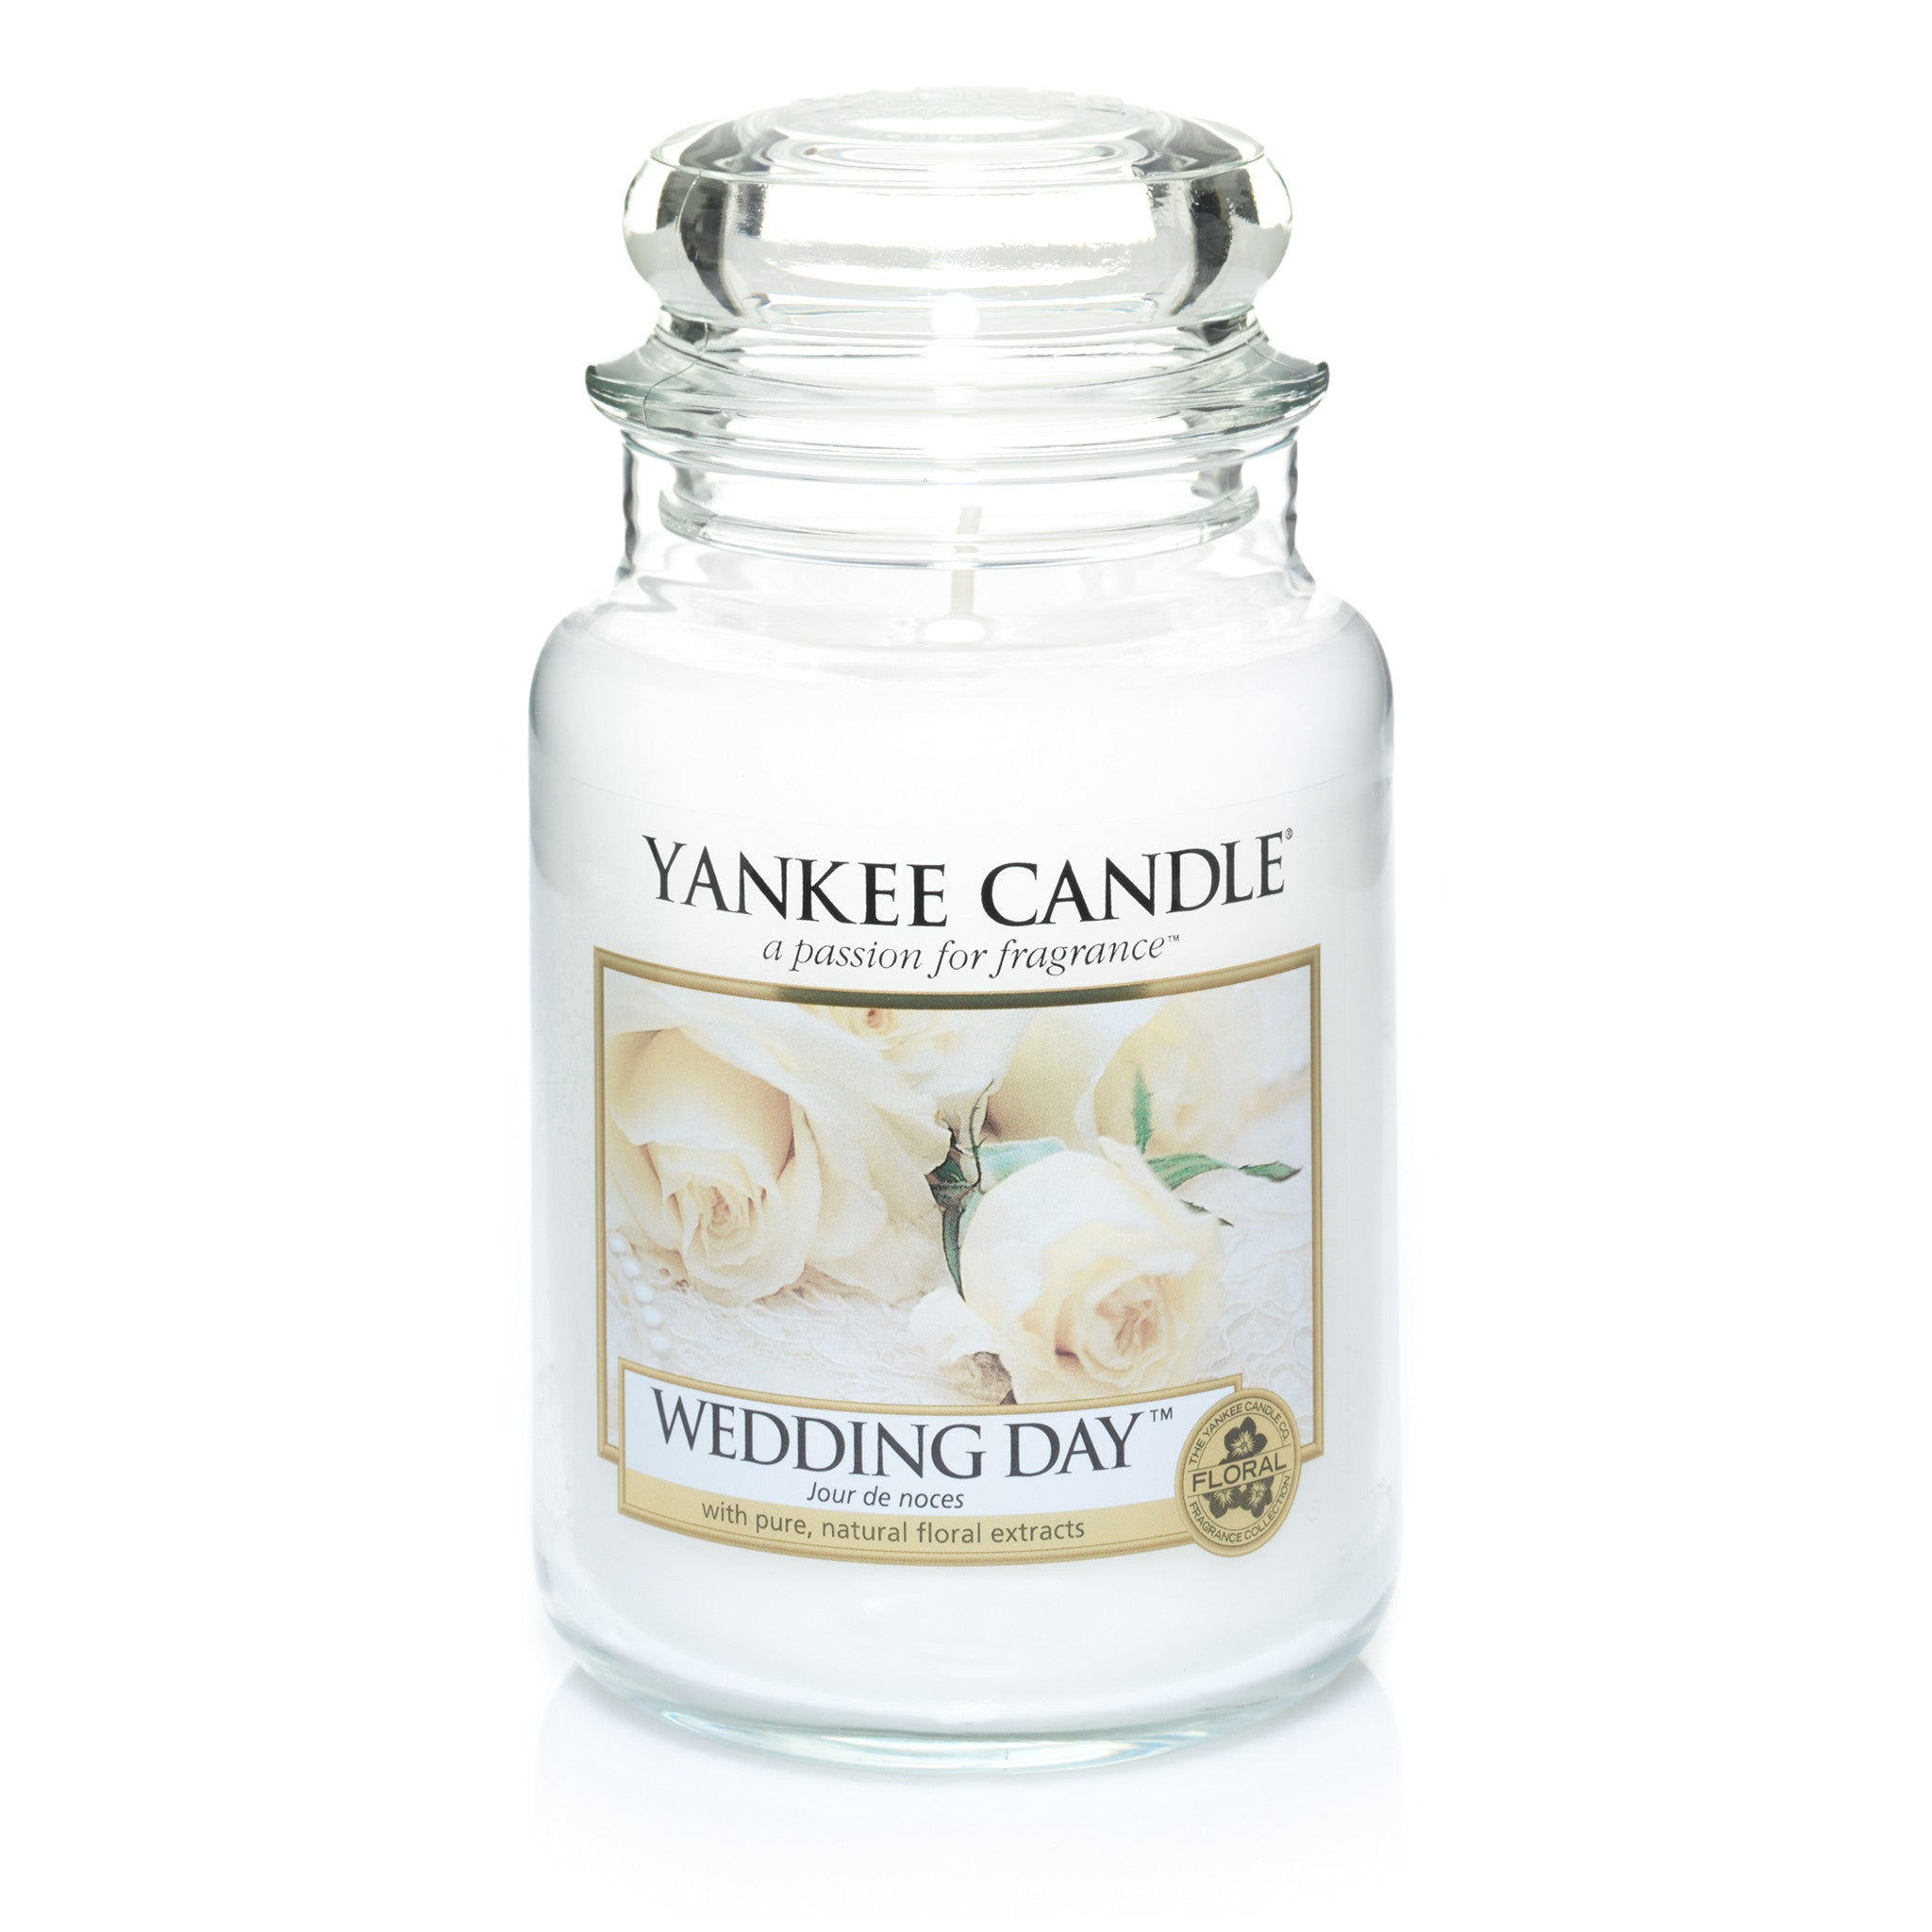 WEDDING DAY -Yankee Candle- Giara Grande